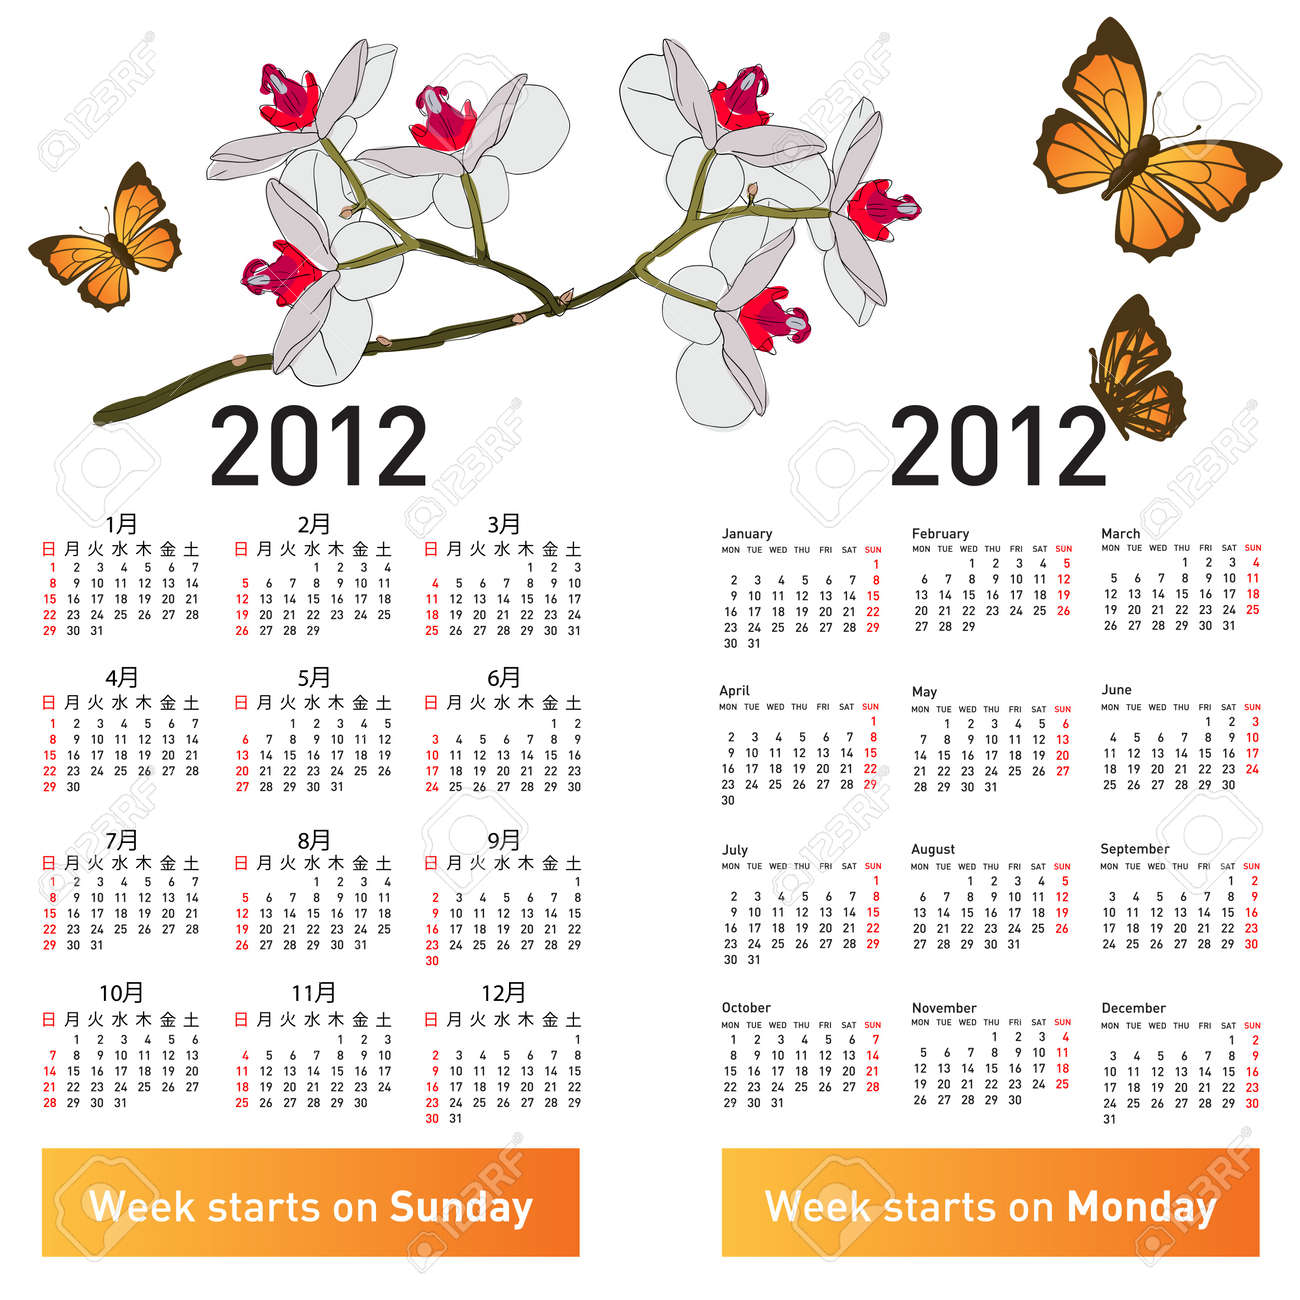 Stylish Japanese calendar with flowers and butterflies for 2012. In Japanese and English. Stock Vector - 10960852